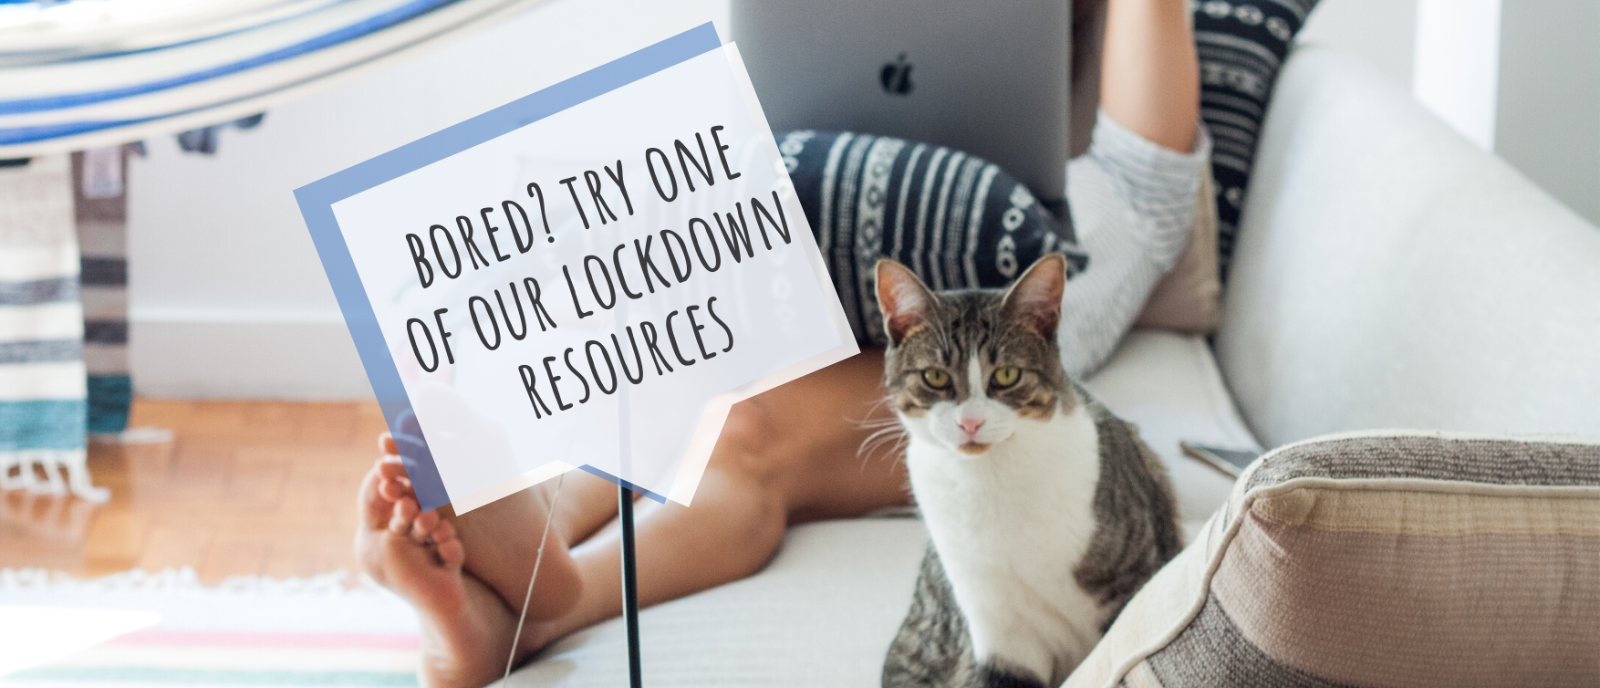 Bored? Try one of our lockdown resources